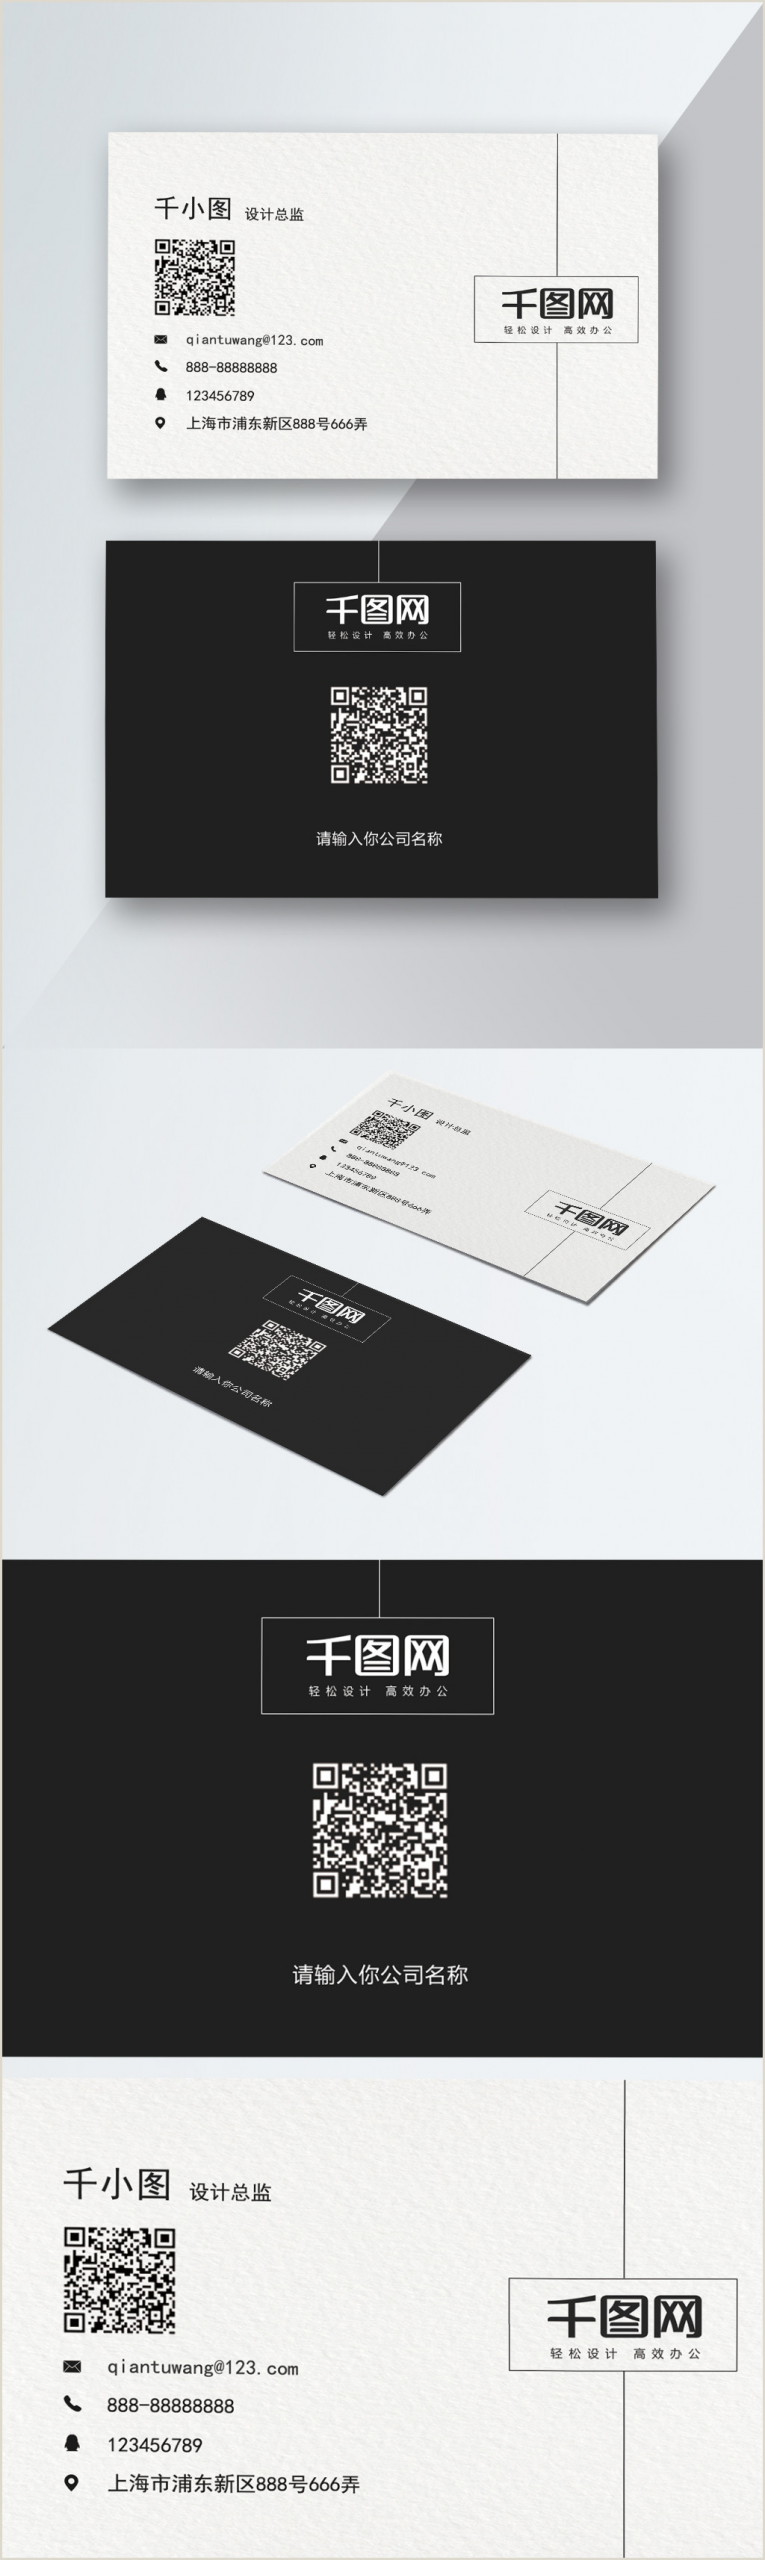 Black And White Business Card Template Black And White Simple Business Card Design Template